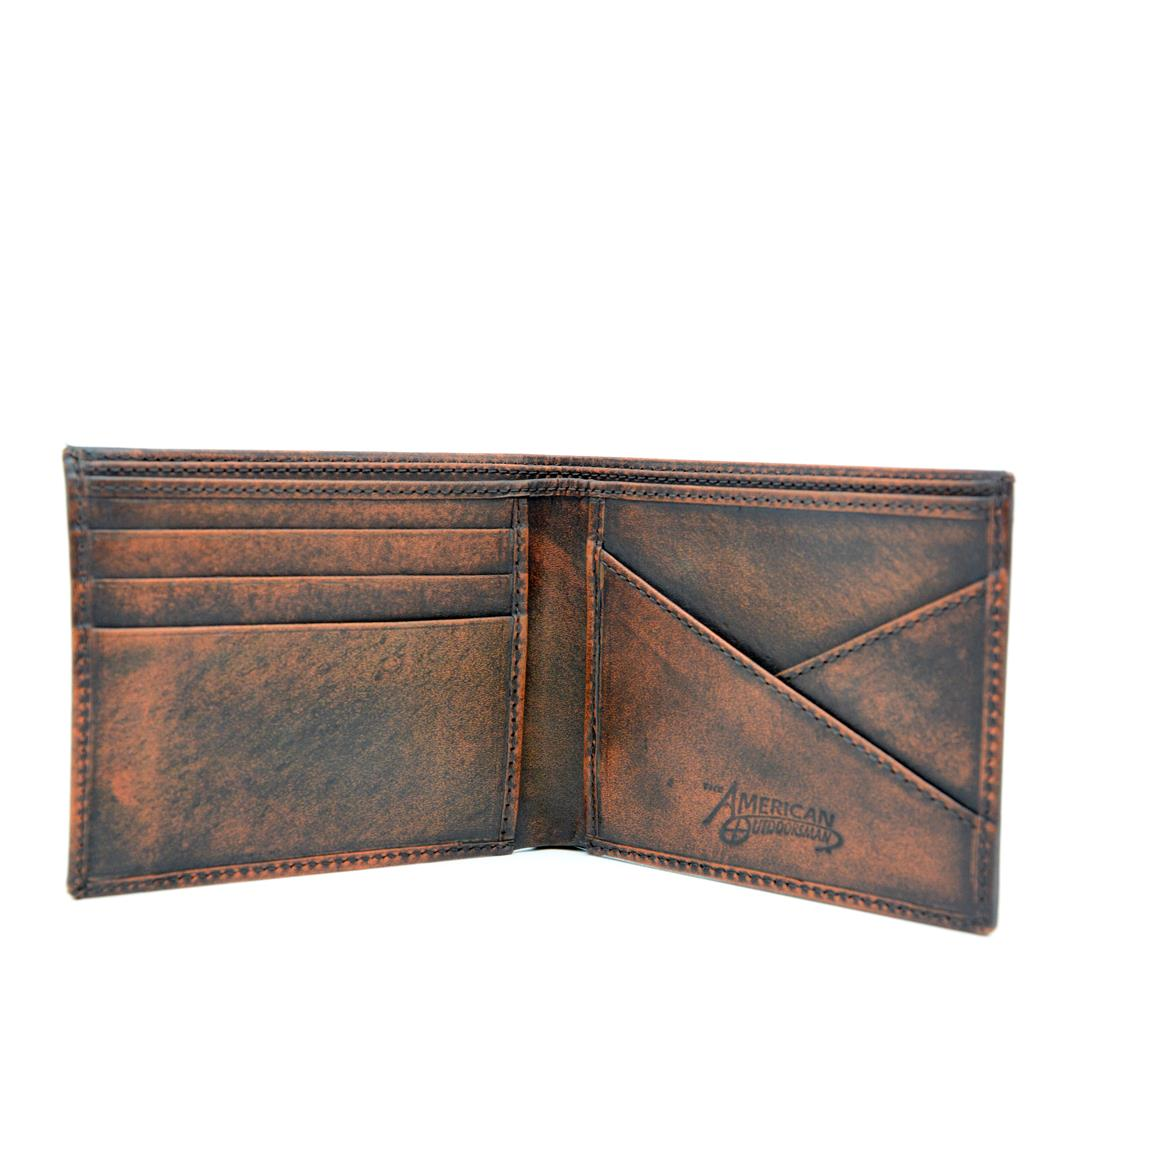 Constructed from genuine leather with washed finish